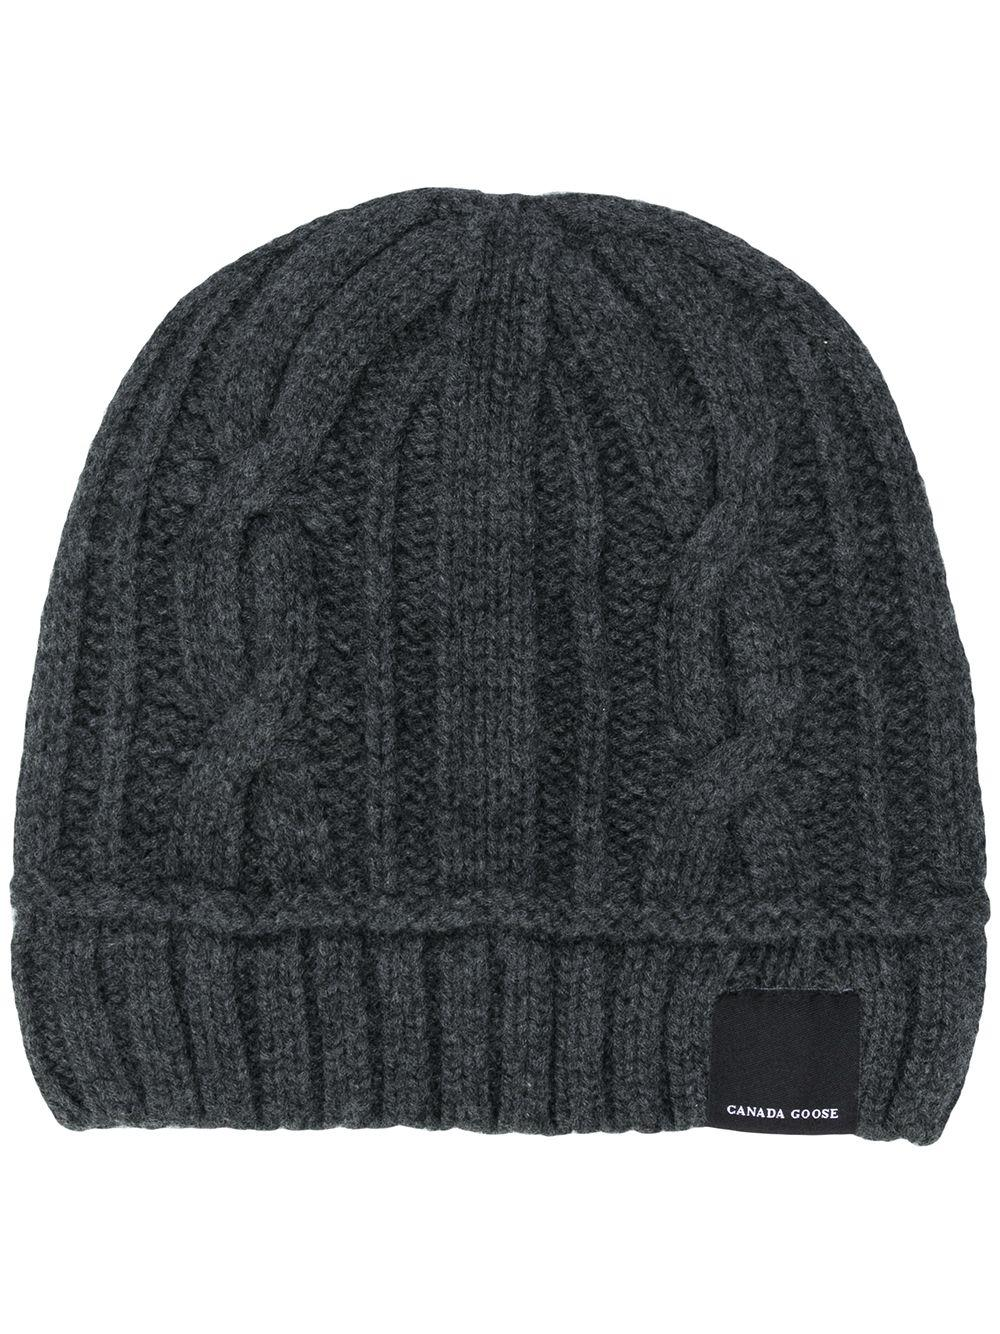 9426251ce33 ... Gray Cable Toque Wool Hat - Lyst. View fullscreen